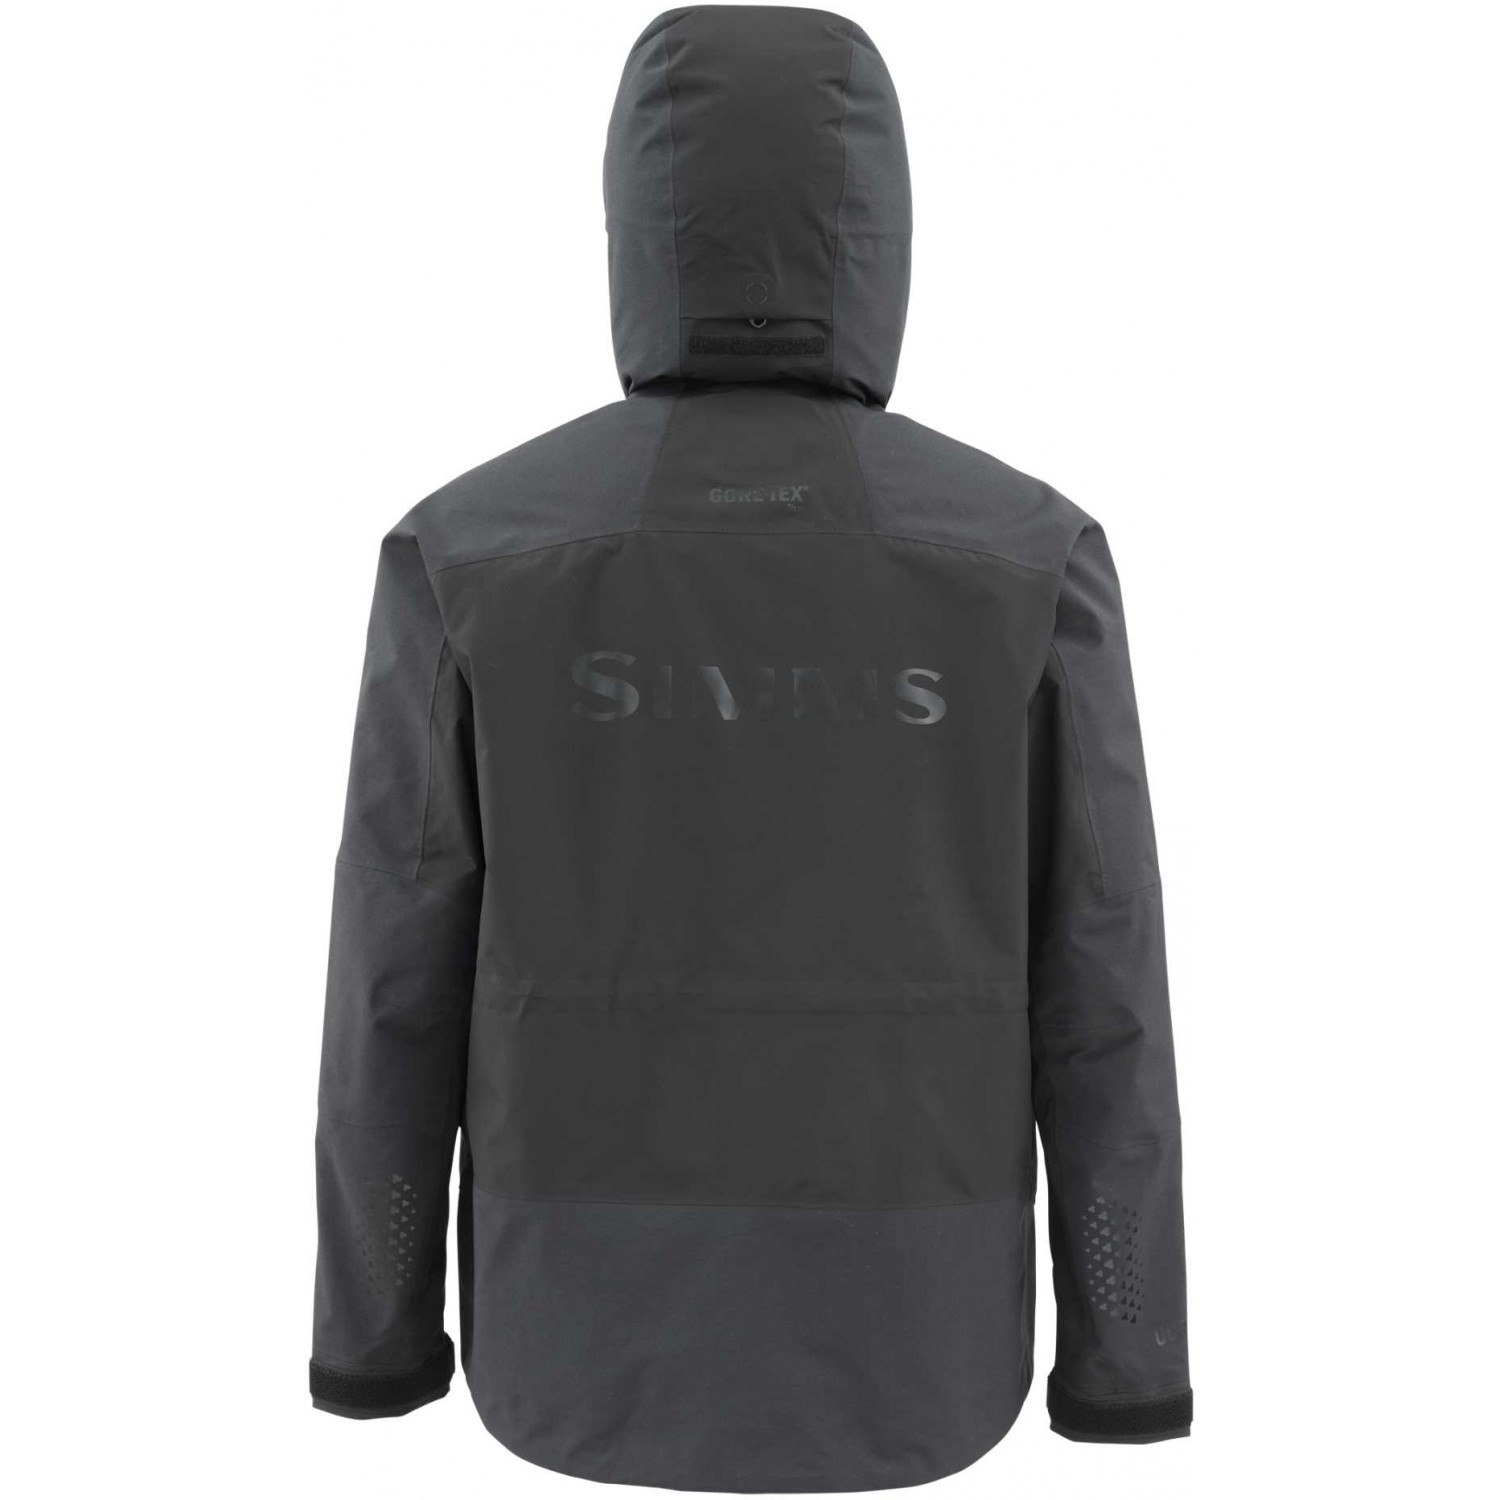 Simms ProDry Gore-Tex Jacket Black